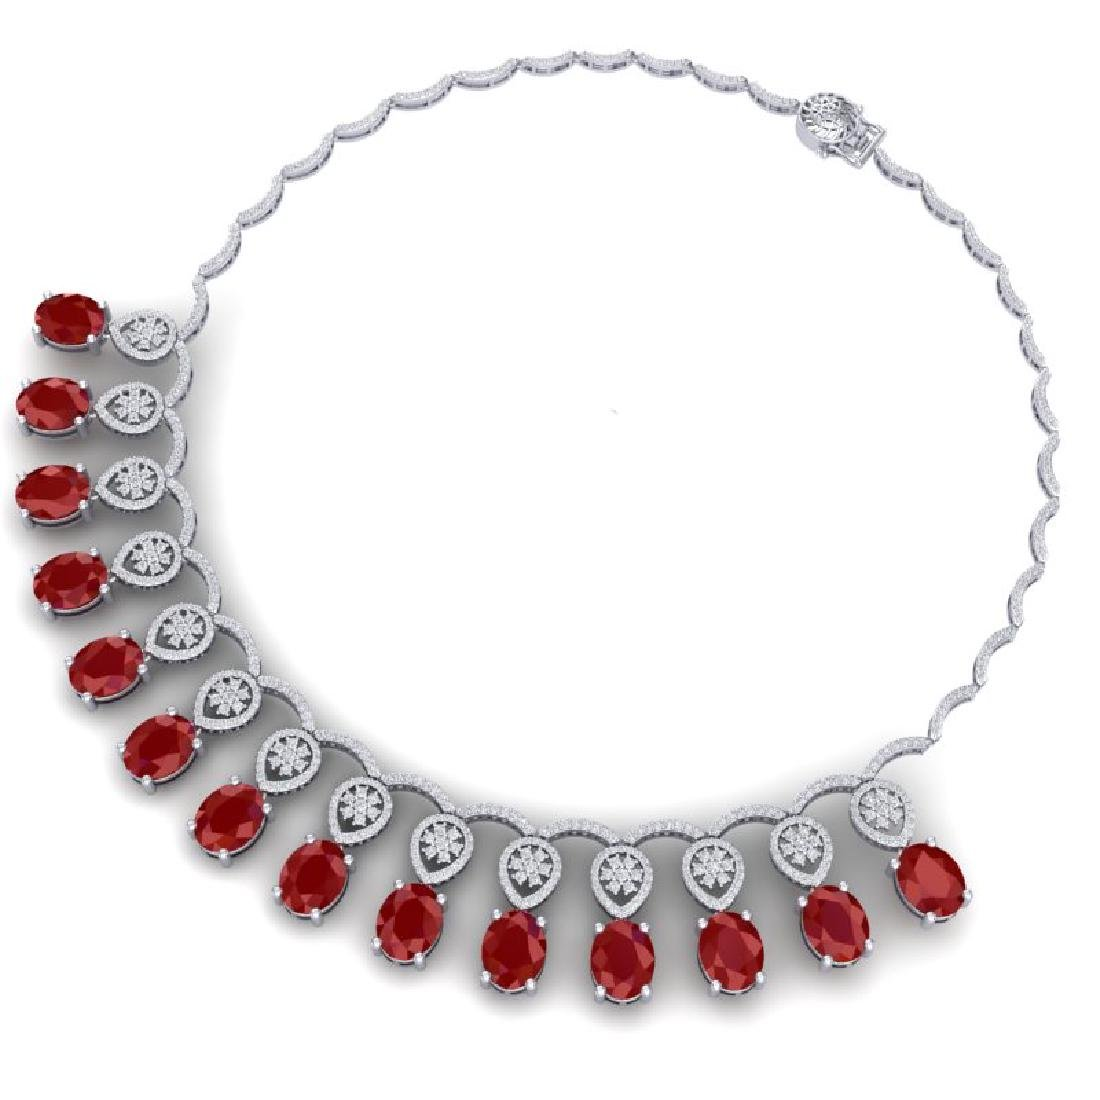 54.05 CTW Royalty Ruby & VS Diamond Necklace 18K White - 3